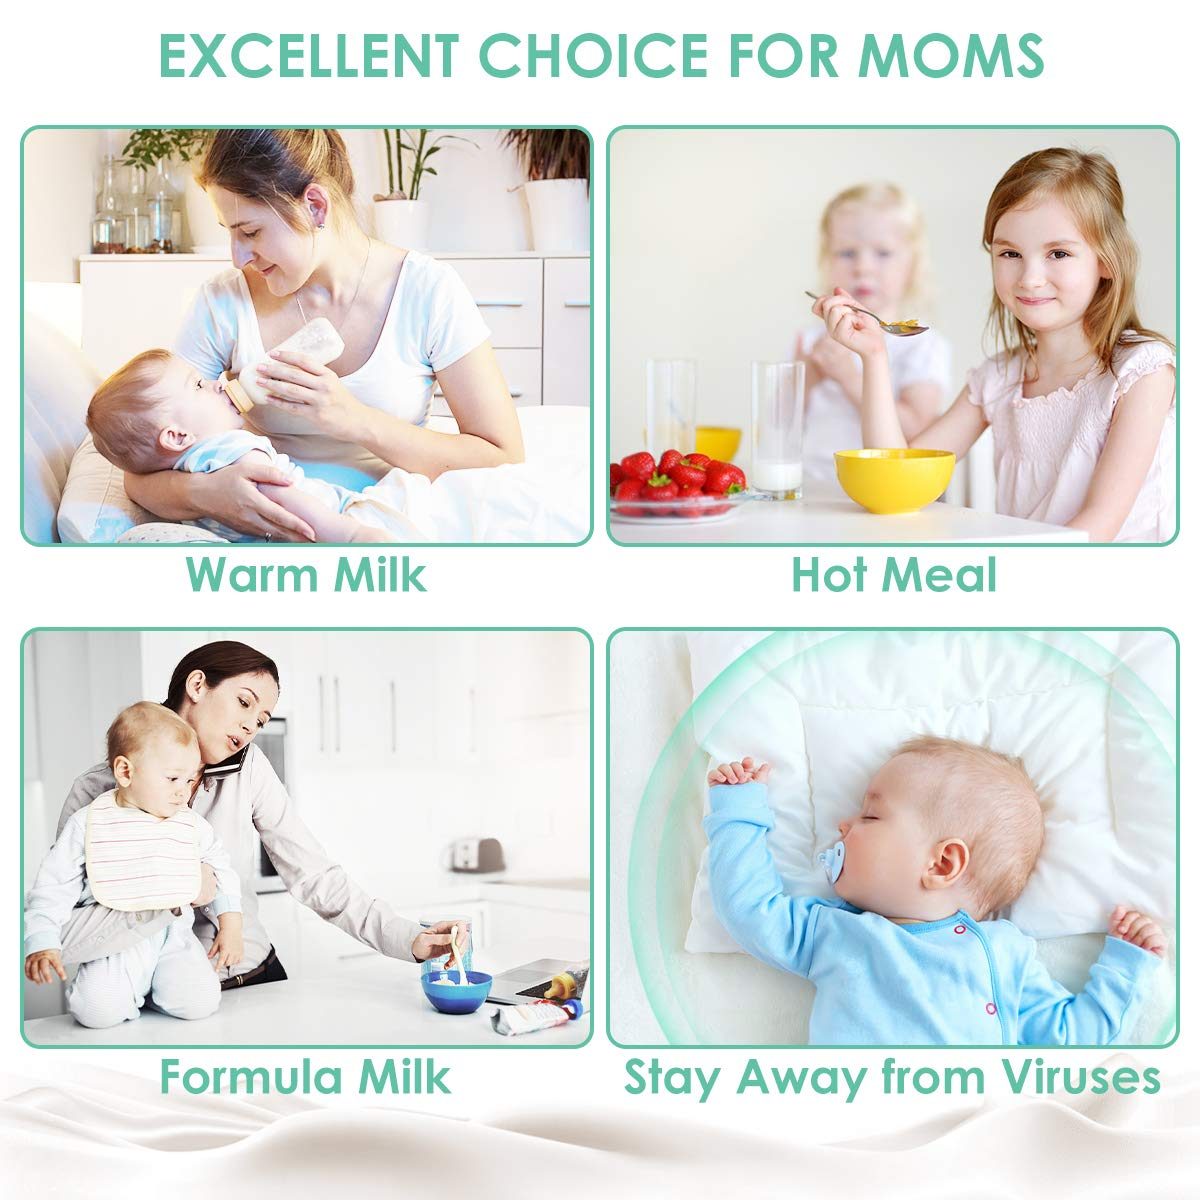 EIVOTOR 【Large Size】 Electric Steam Sterili-zer with LED Display Accurate Temperature Control for Breastmilk or Formula BPA Free Baby Bottle Warmer Dry Sterilizer Steam